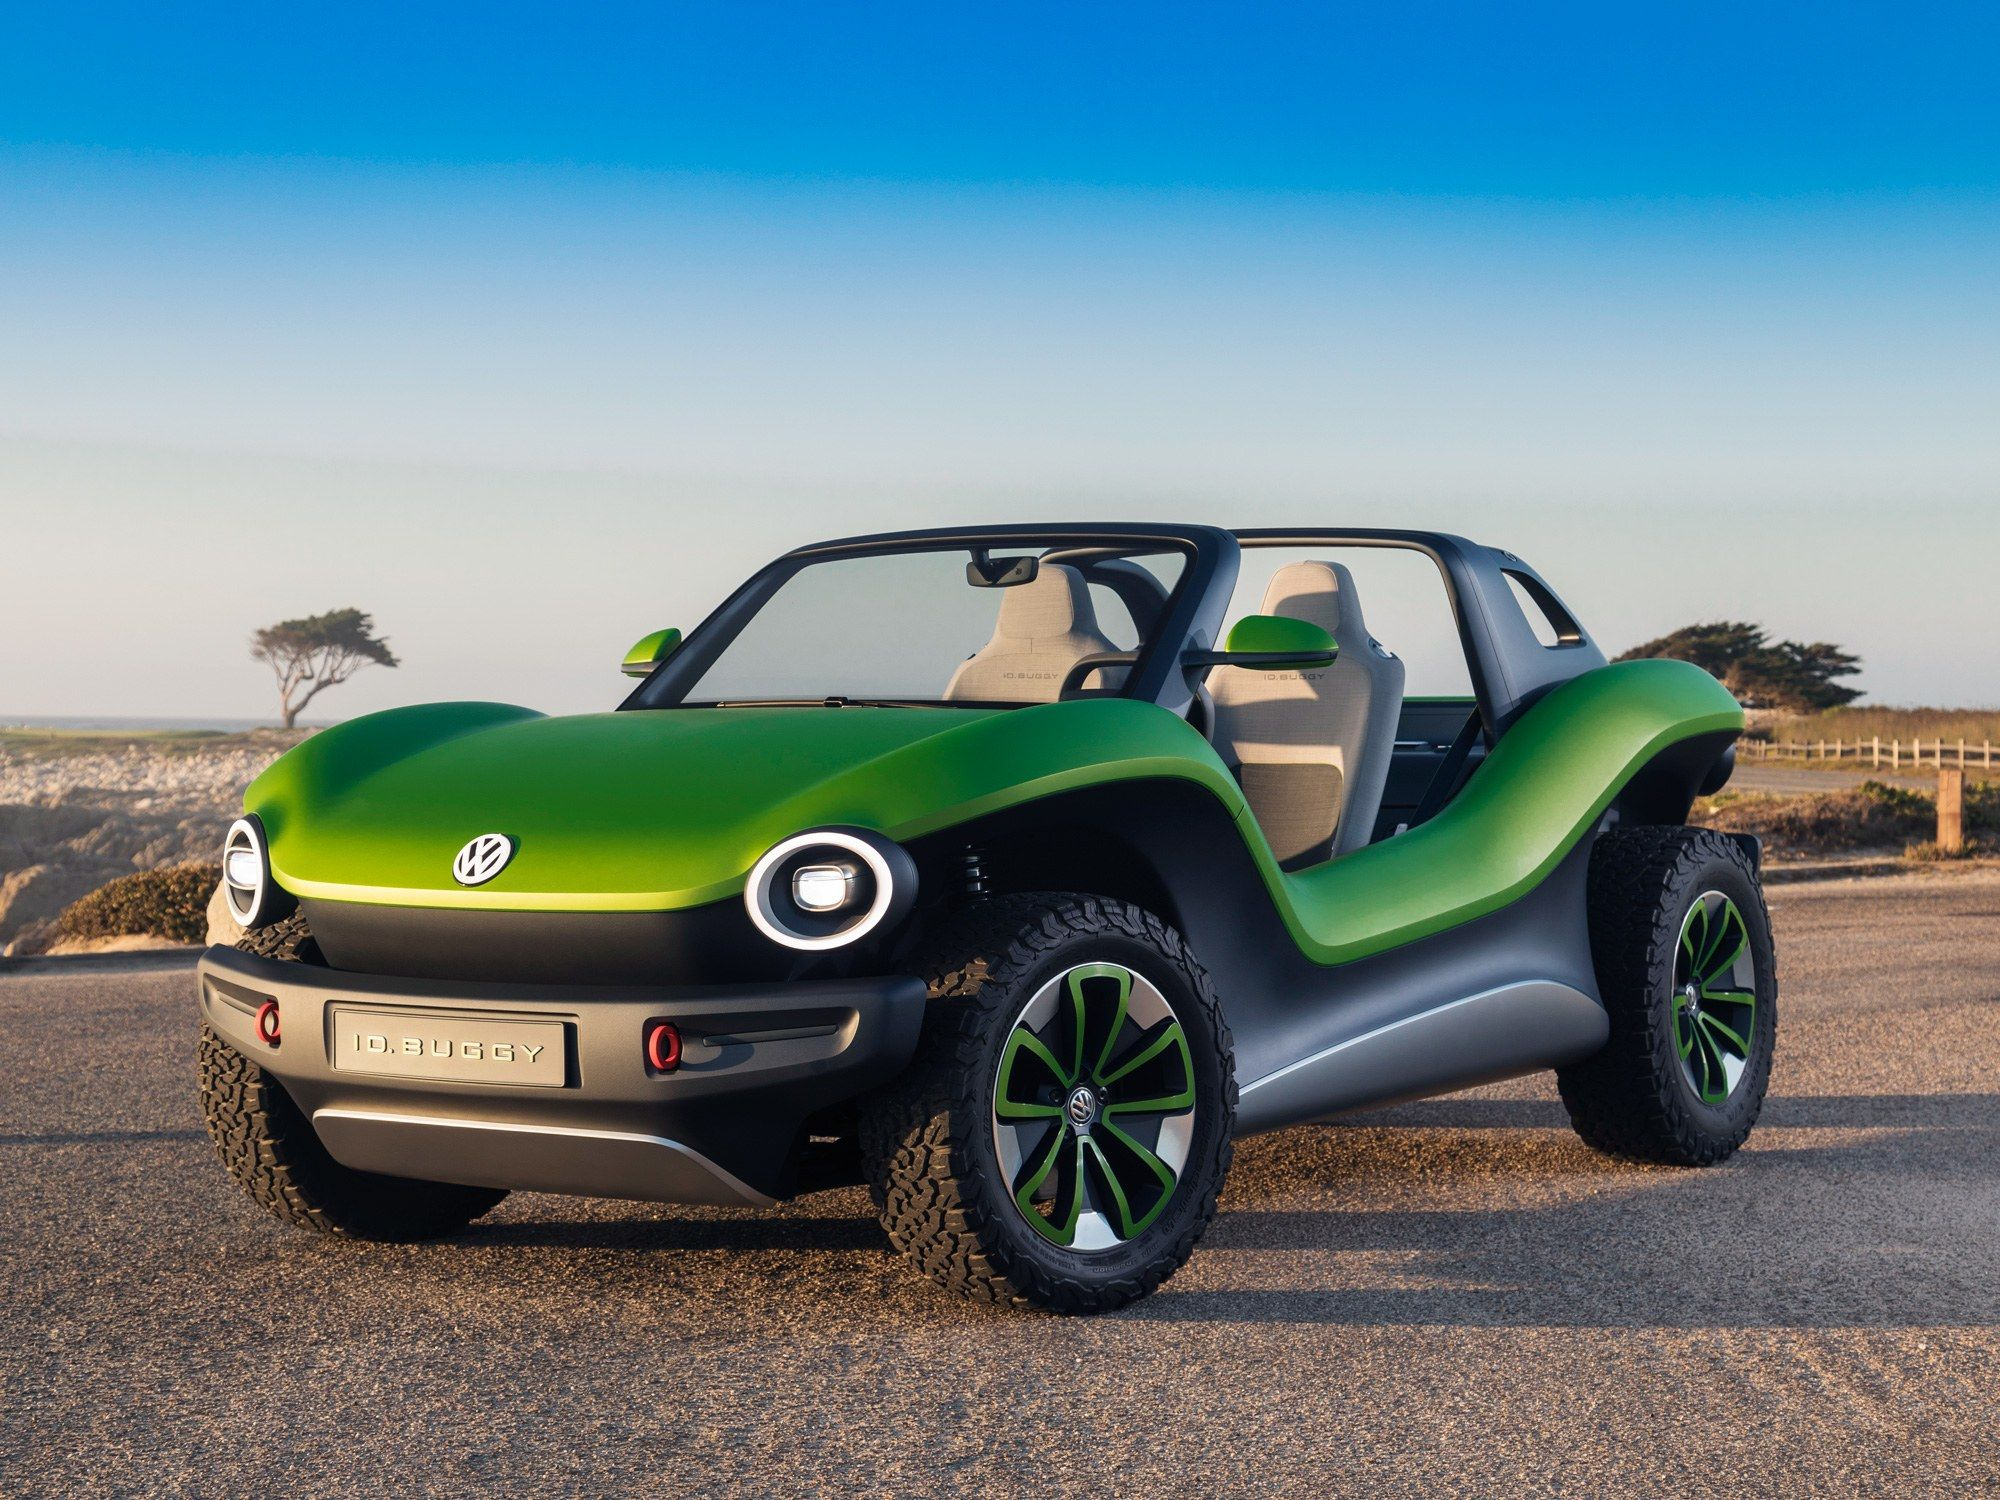 Vw S Id Buggy Is An Electric Dune Dominator Dune Buggy Volkswagen Electricity